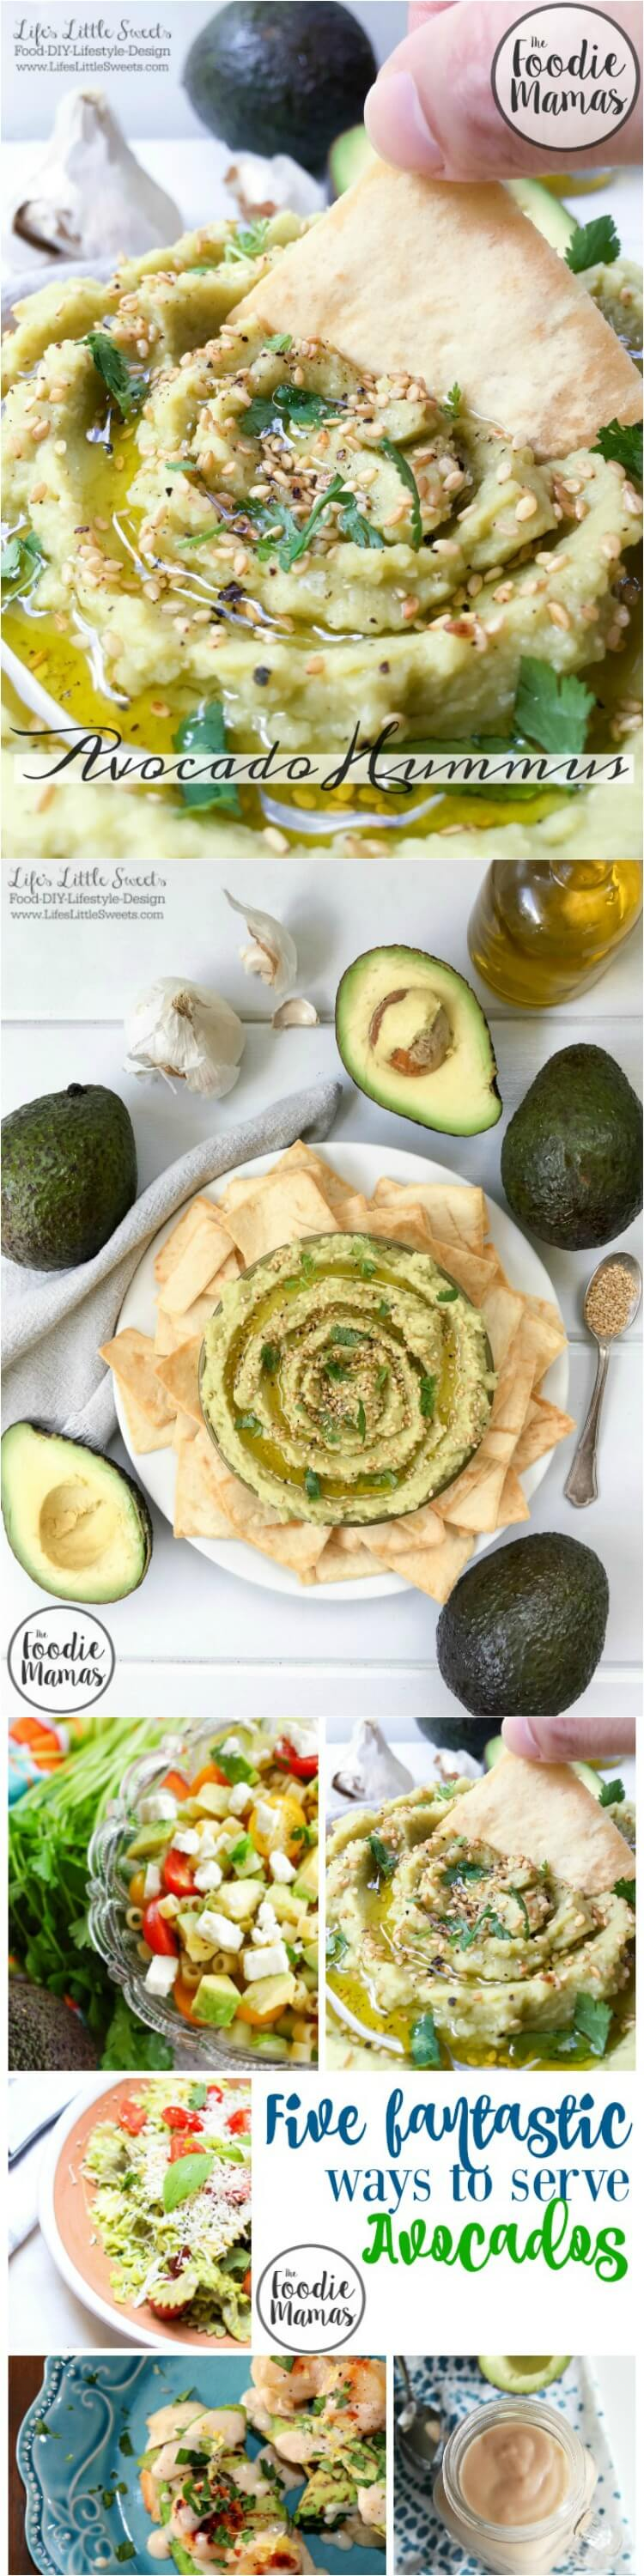 With 7 ingredients or less, this Avocado Hummus recipe is easy to whip up in minutes. Topped with sesame seeds and fresh cilantro, let this be your new favorite appetizer or party snack! Check out the entire #FoodieMamas recipe round up featuring avocados.